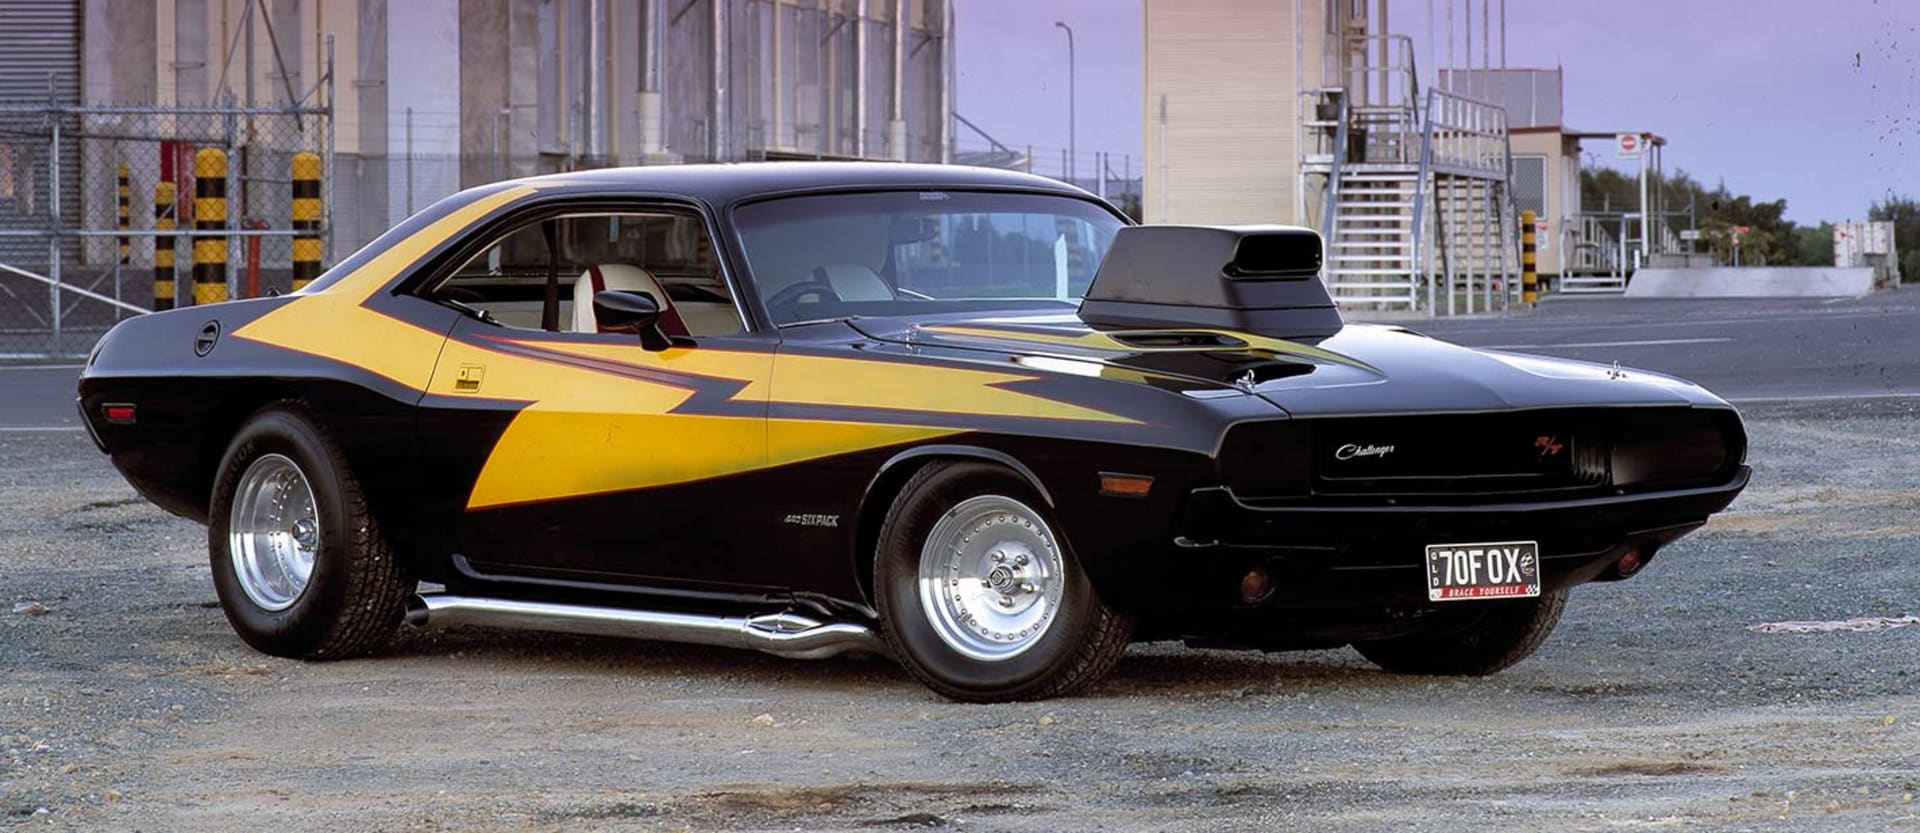 dodge charger front nw